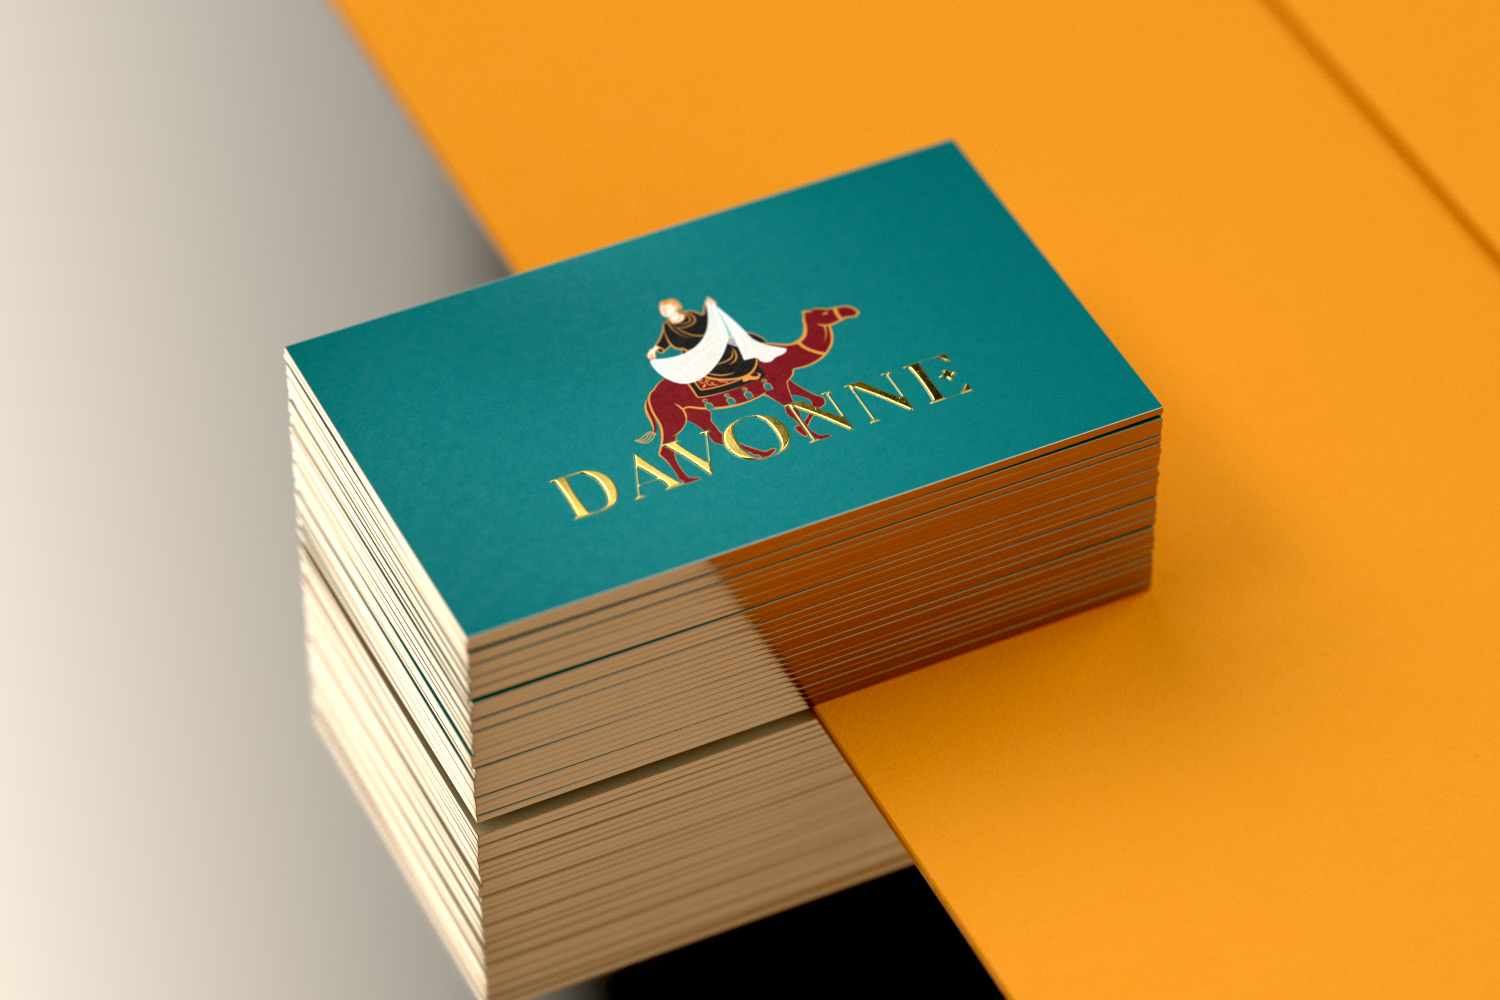 Davonne business card show golden edge painting